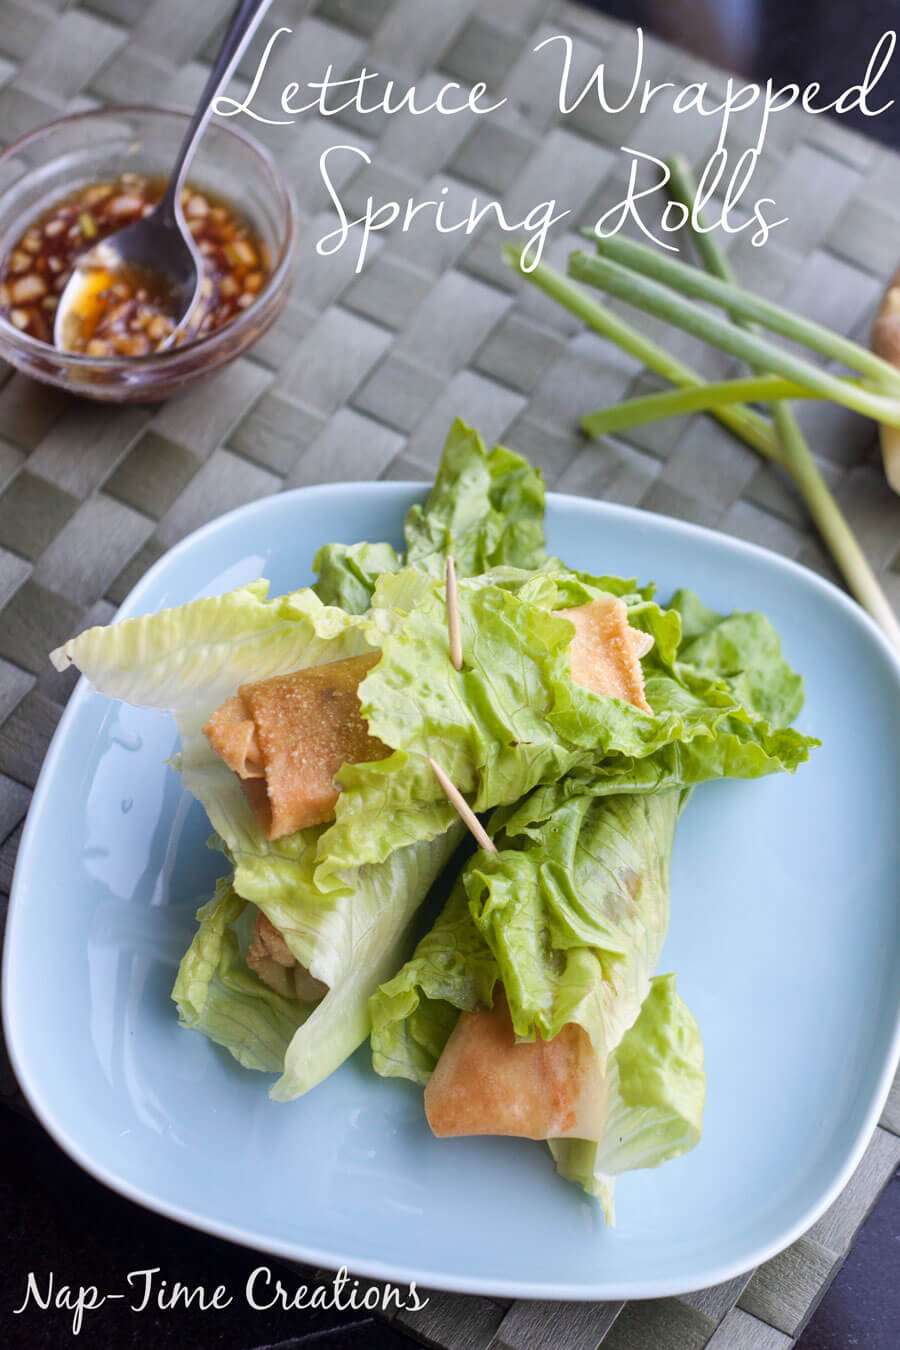 Lettuce-wrapped-spring-rolls-with-dipping-sauce-from-Nap-Time-Creations